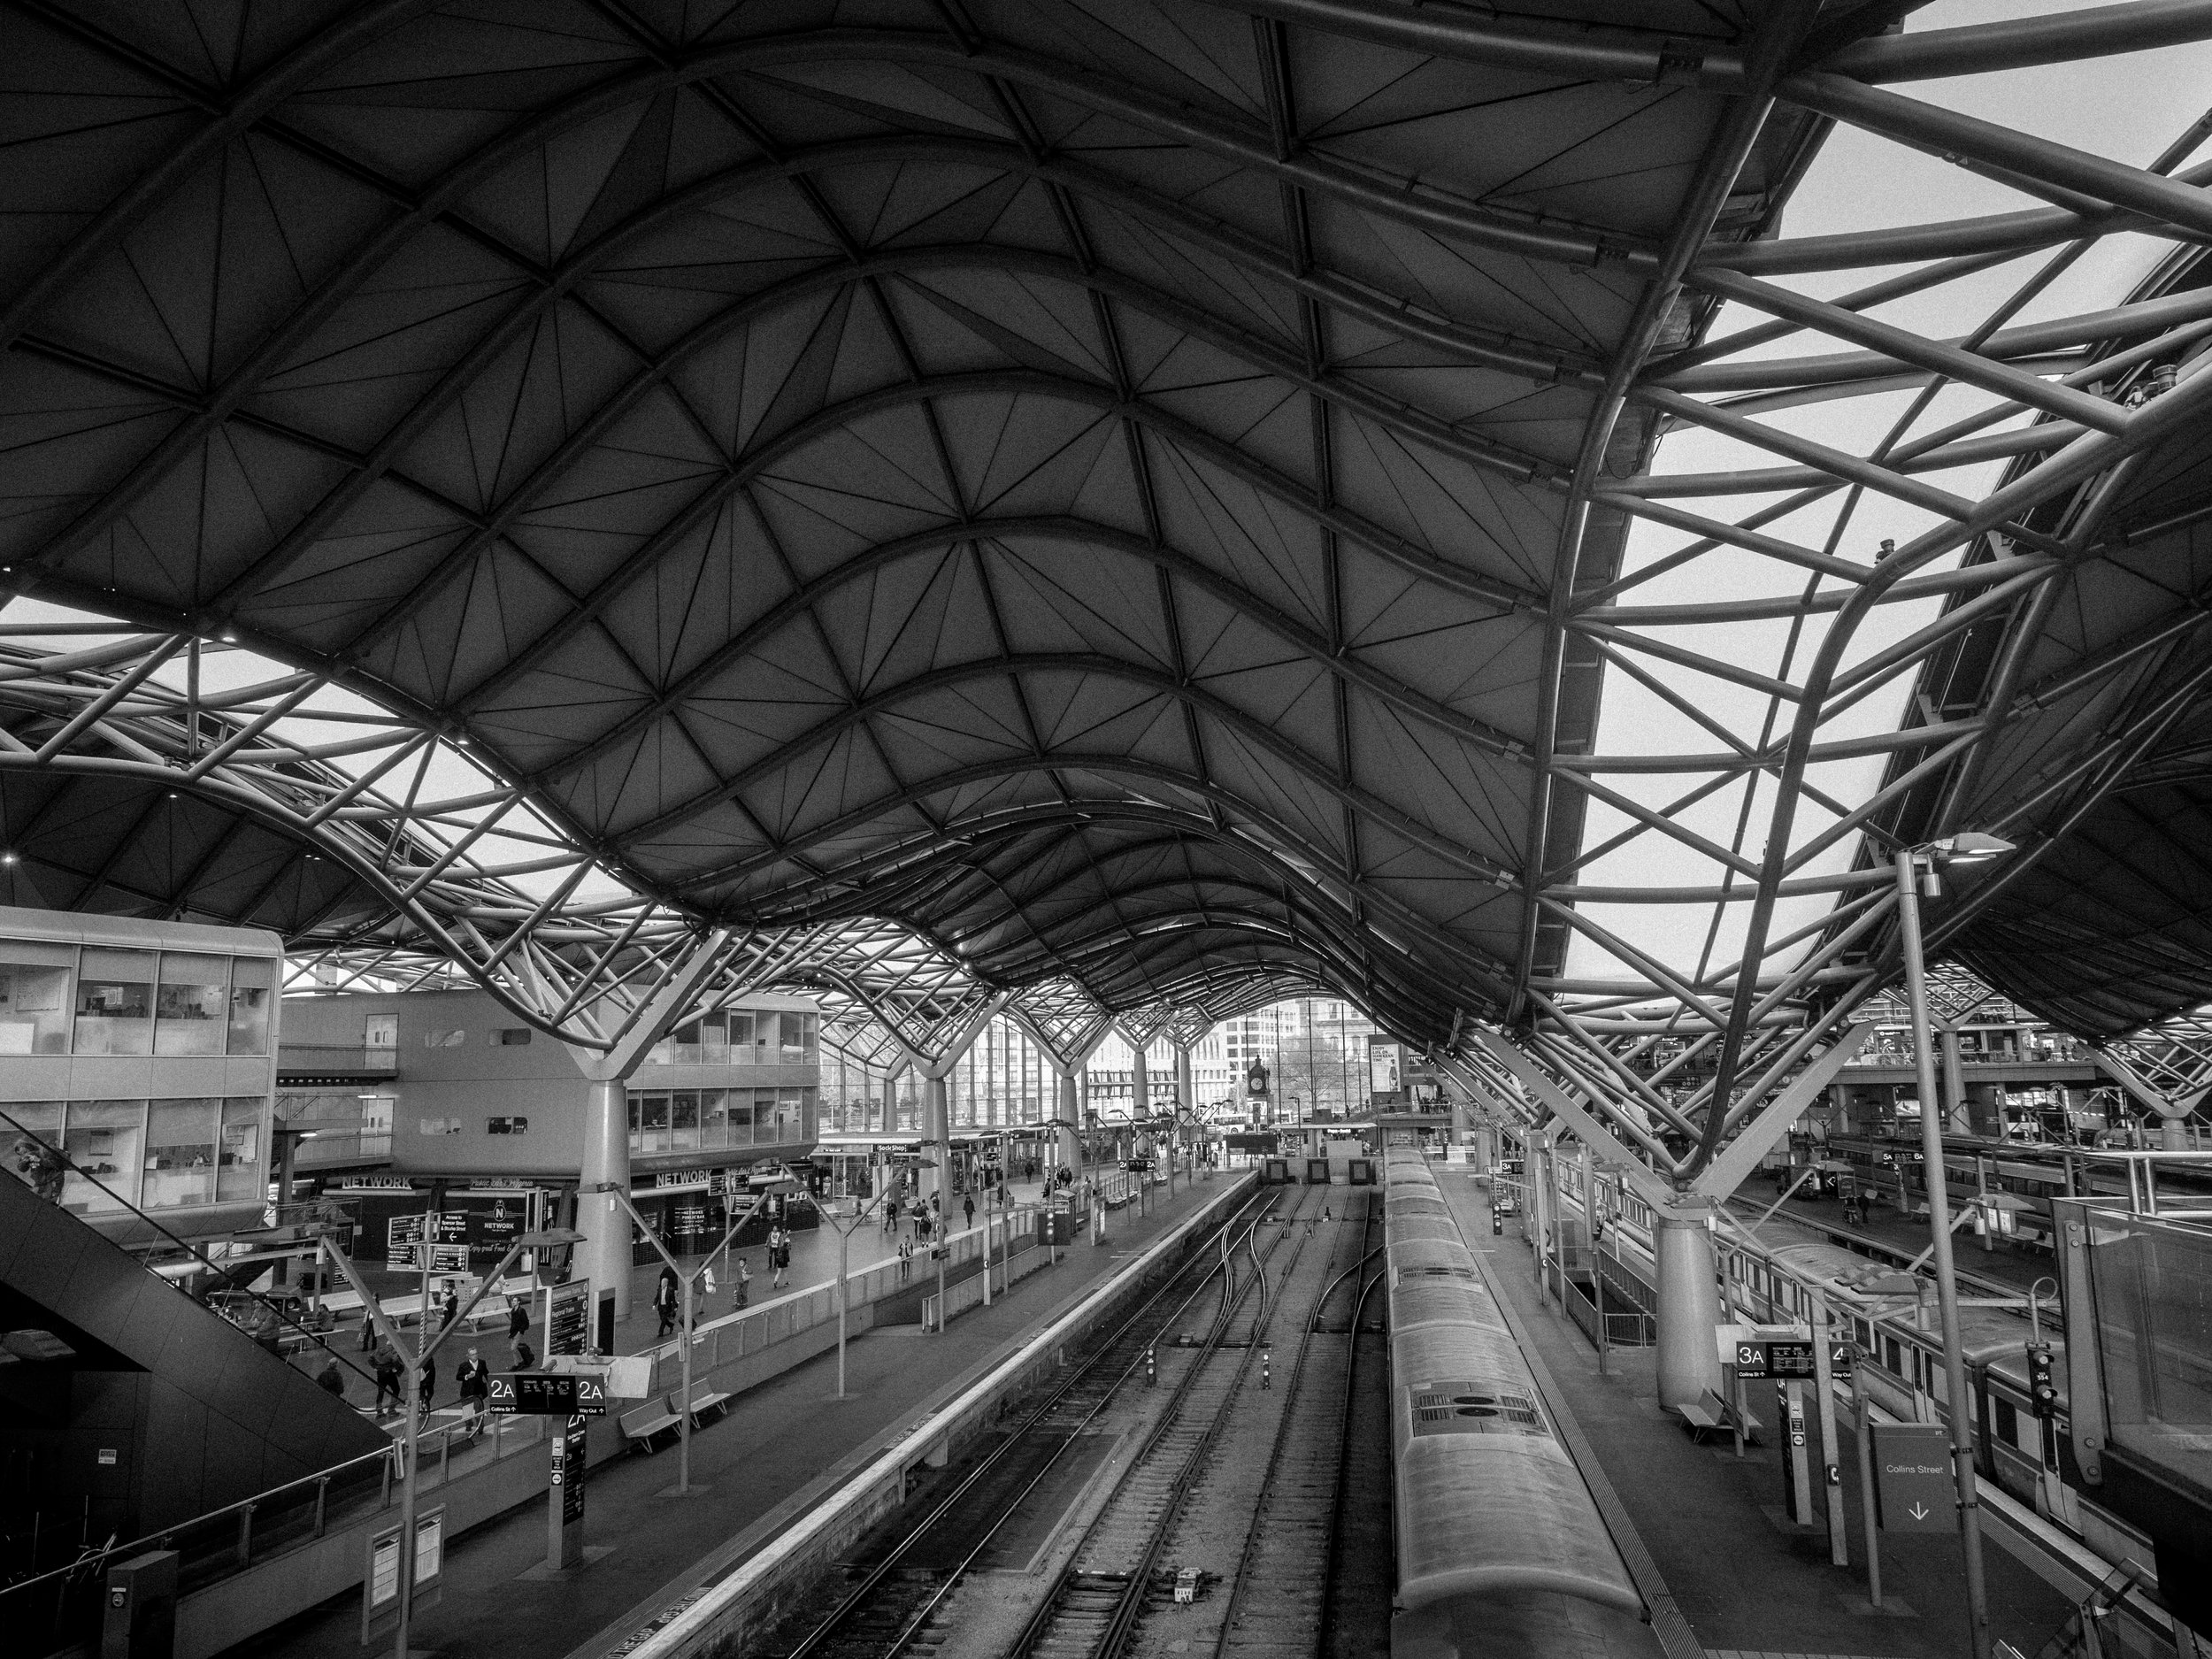 Southern Cross Station redeveloped in the 2000's with major delays and over budget by a staggering $200 million. It's been criticised for poorer pedestrian access due to closure of underground connection that's been replaced by awkward escalators